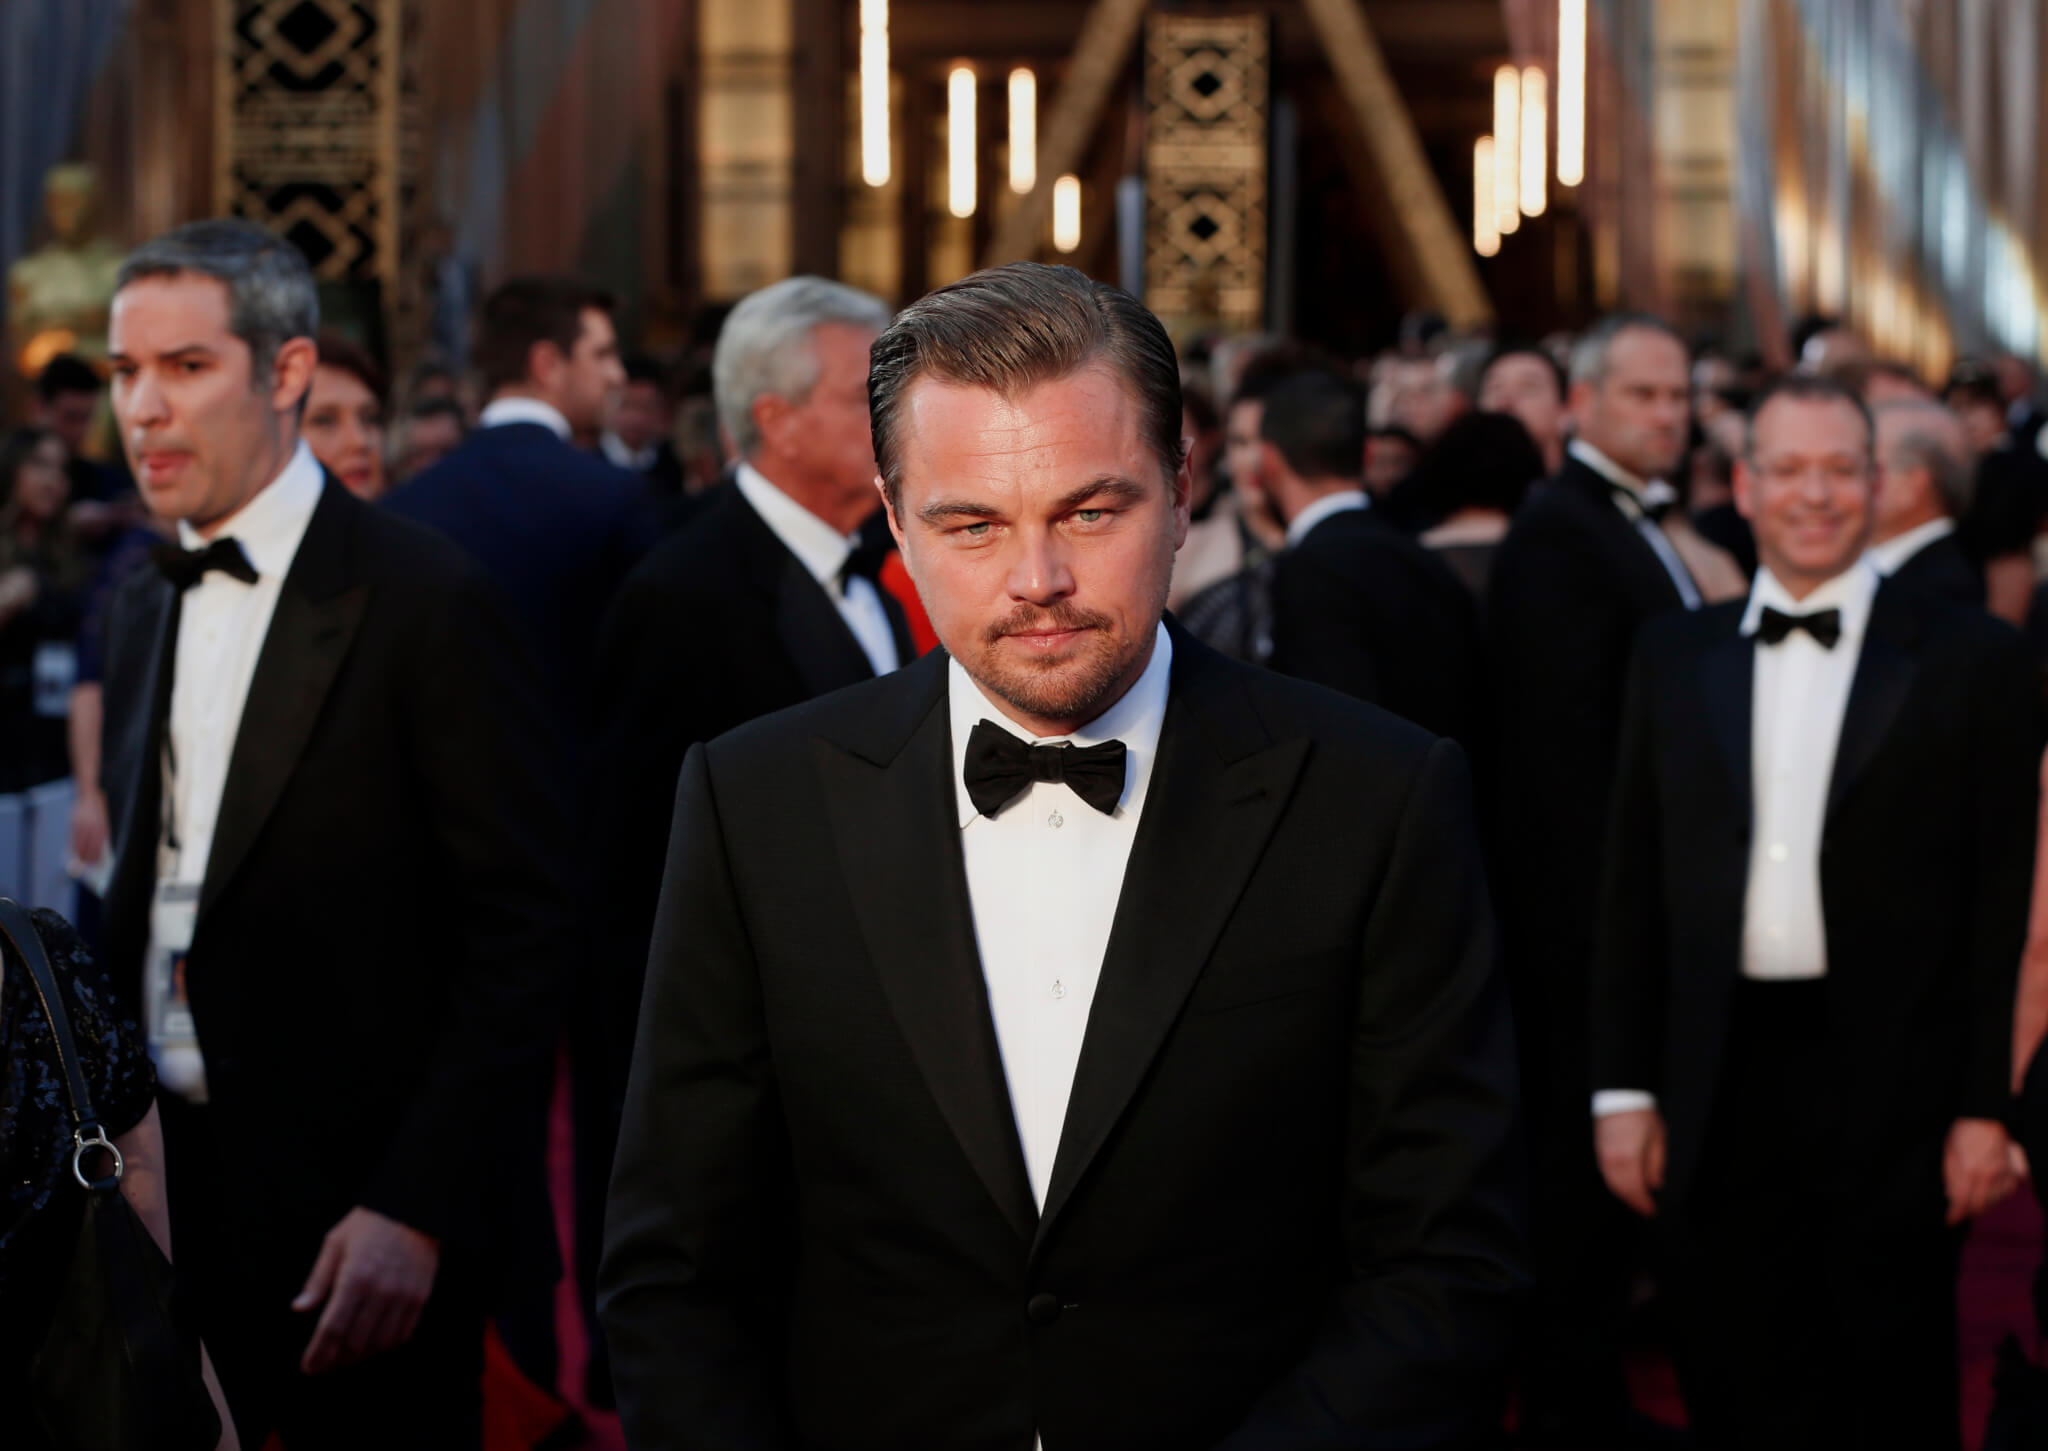 """Leonardo DiCaprio, nominated for Best Actor for his role in """"The Revenant"""", wearing a Giorgio Armani tuxedo, arrives at the 88th Academy Awards in Hollywood, California February 28, 2016. REUTERS/Lucas Jackson TPX IMAGES OF THE DAY - RTS8FPC"""